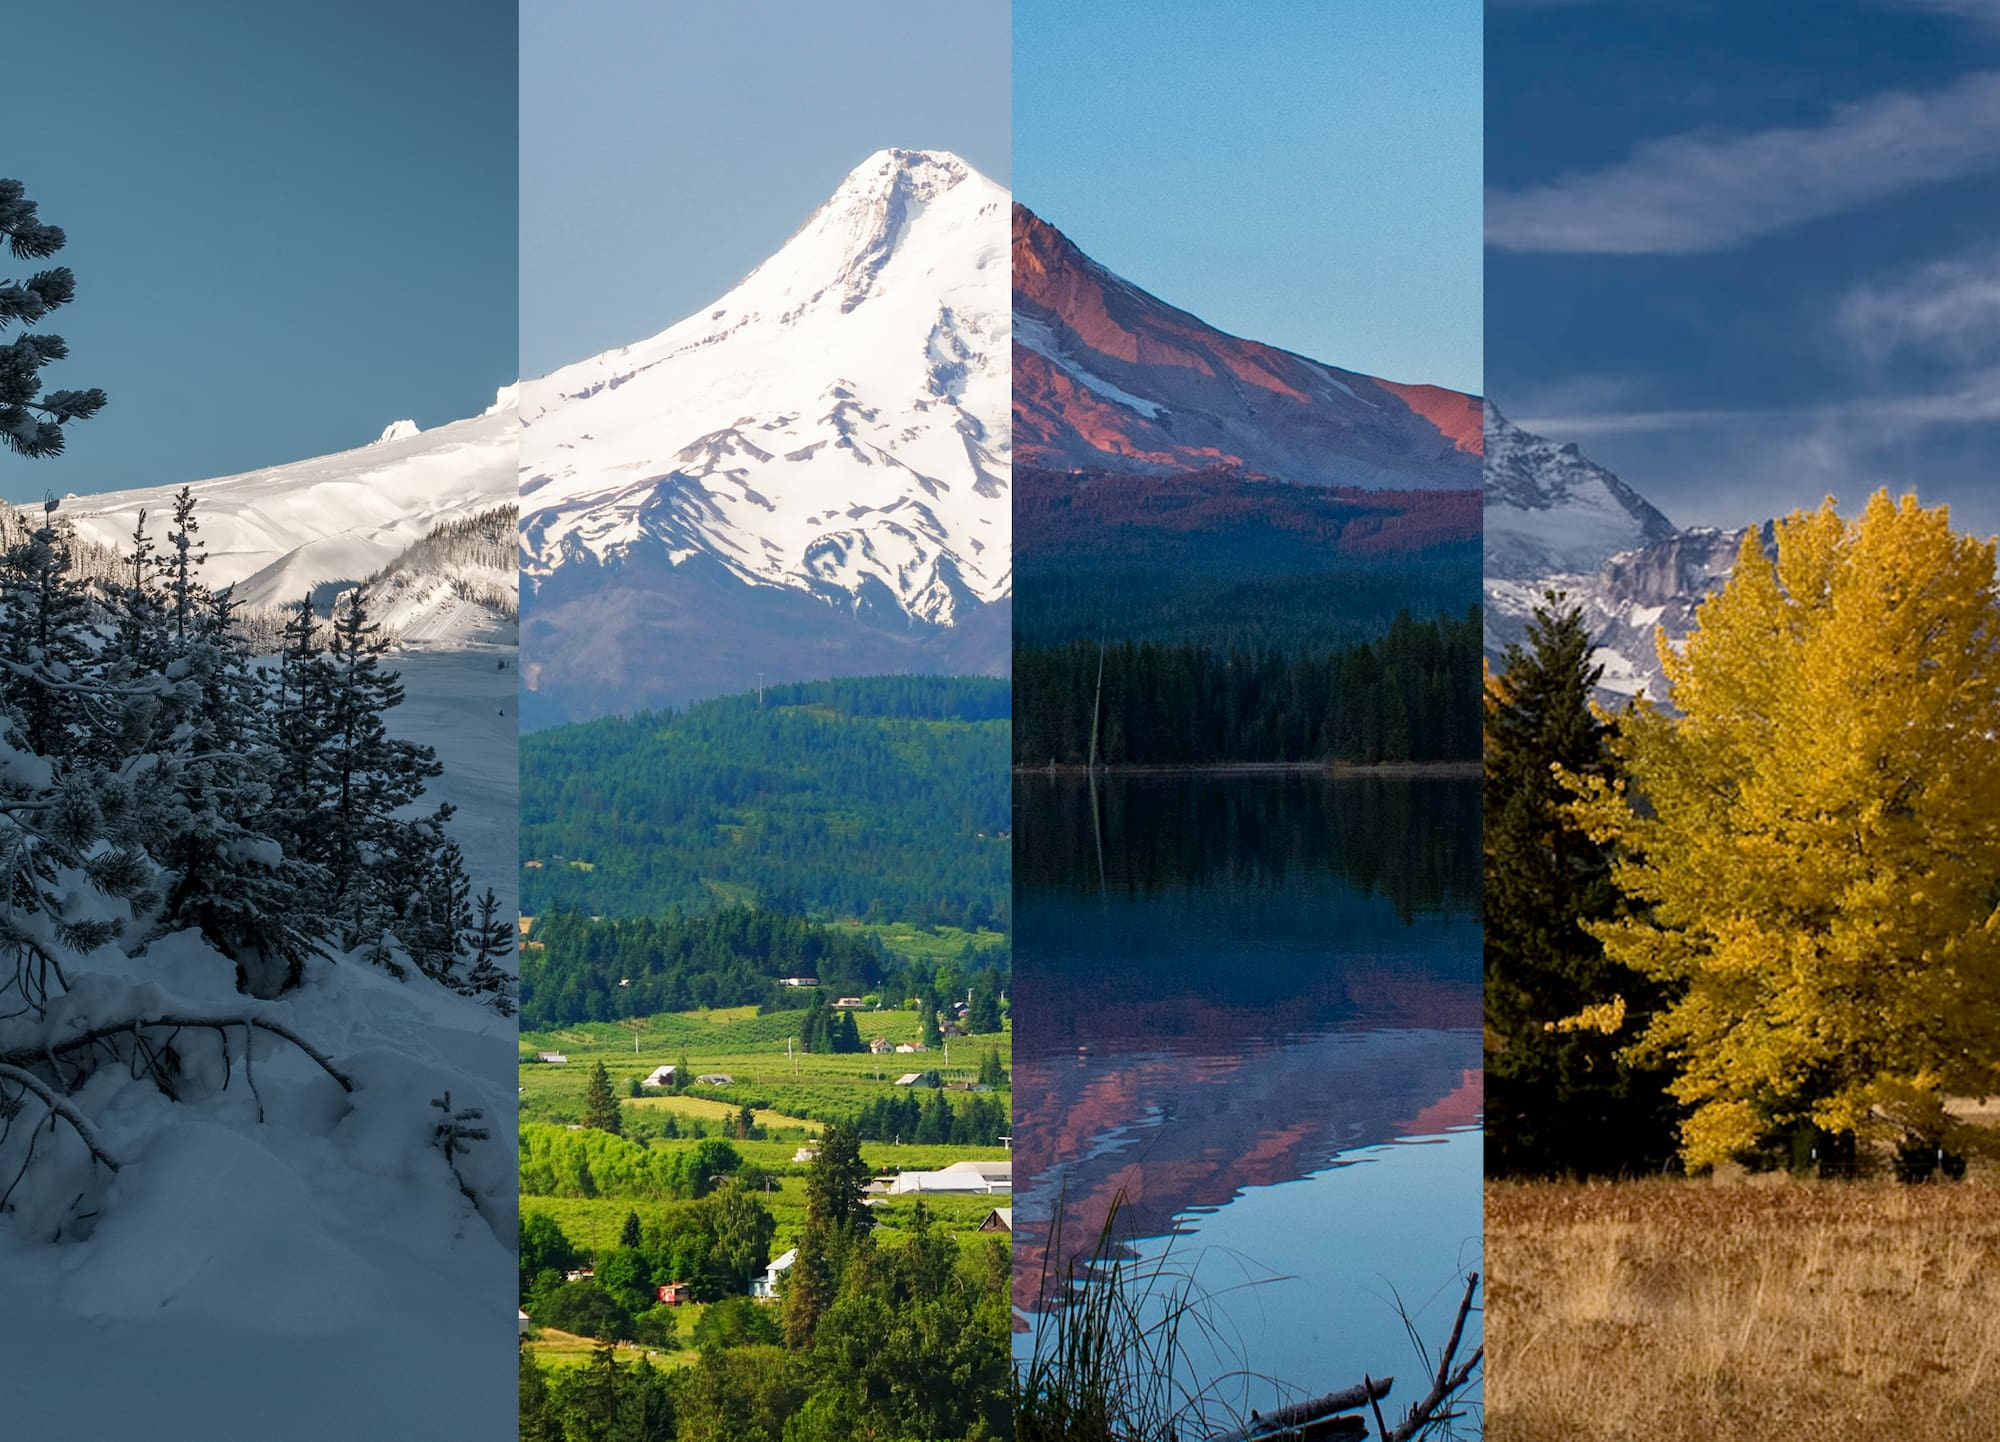 Four separate images of Mt. Hood collaged together.